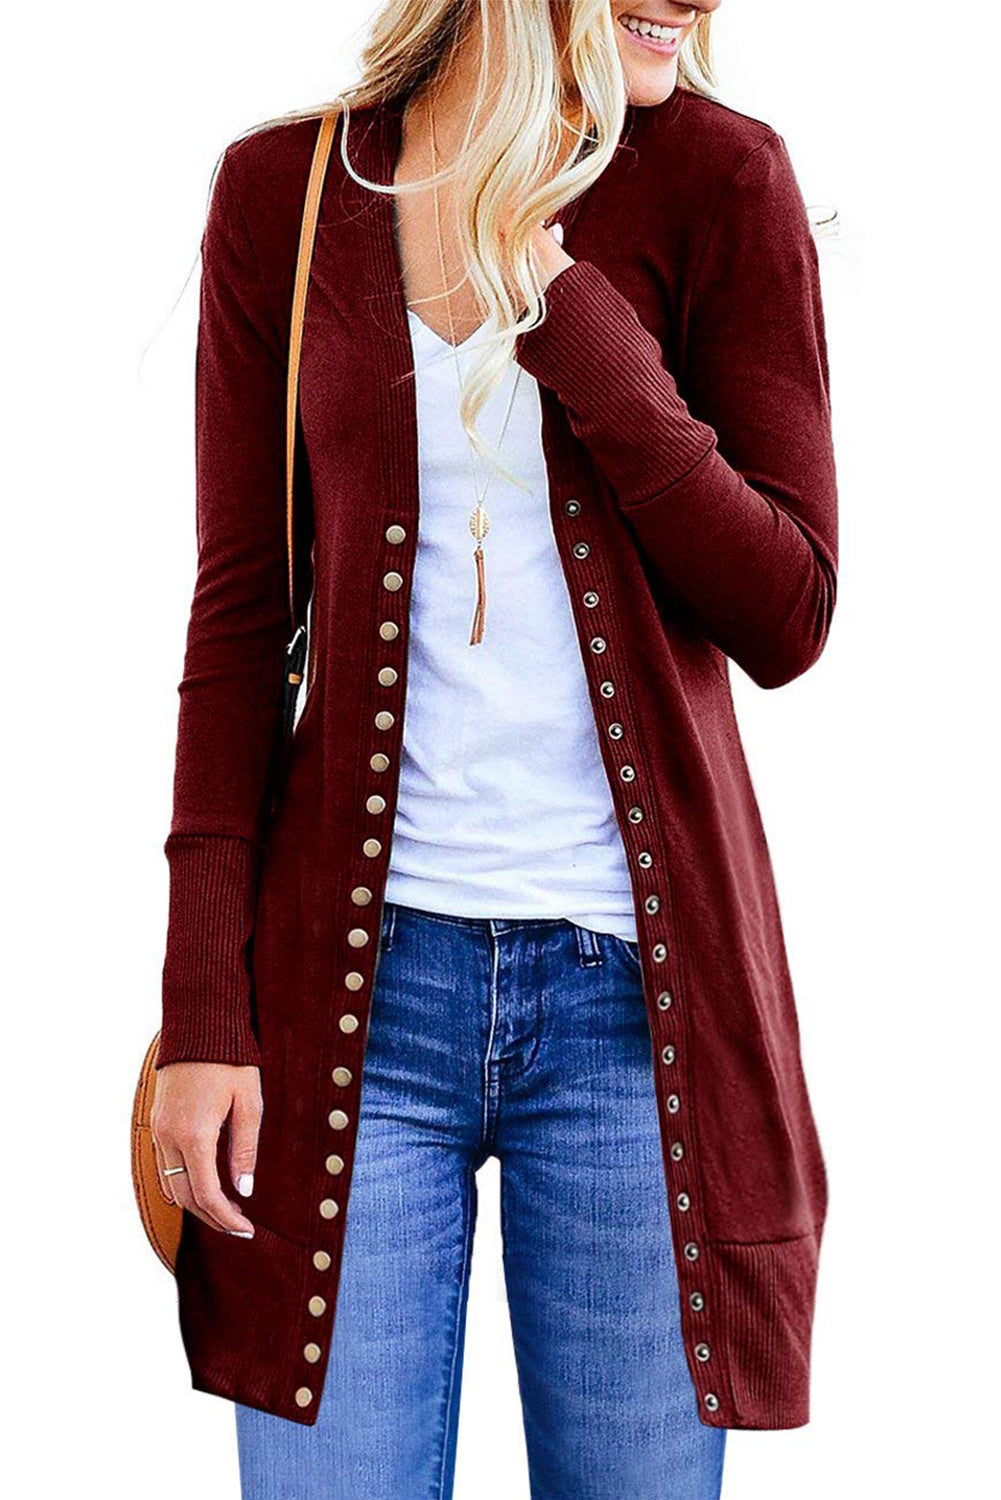 Snap Button Down Red Long Sleeve Knit Ribbed Her Fashion Cardigan